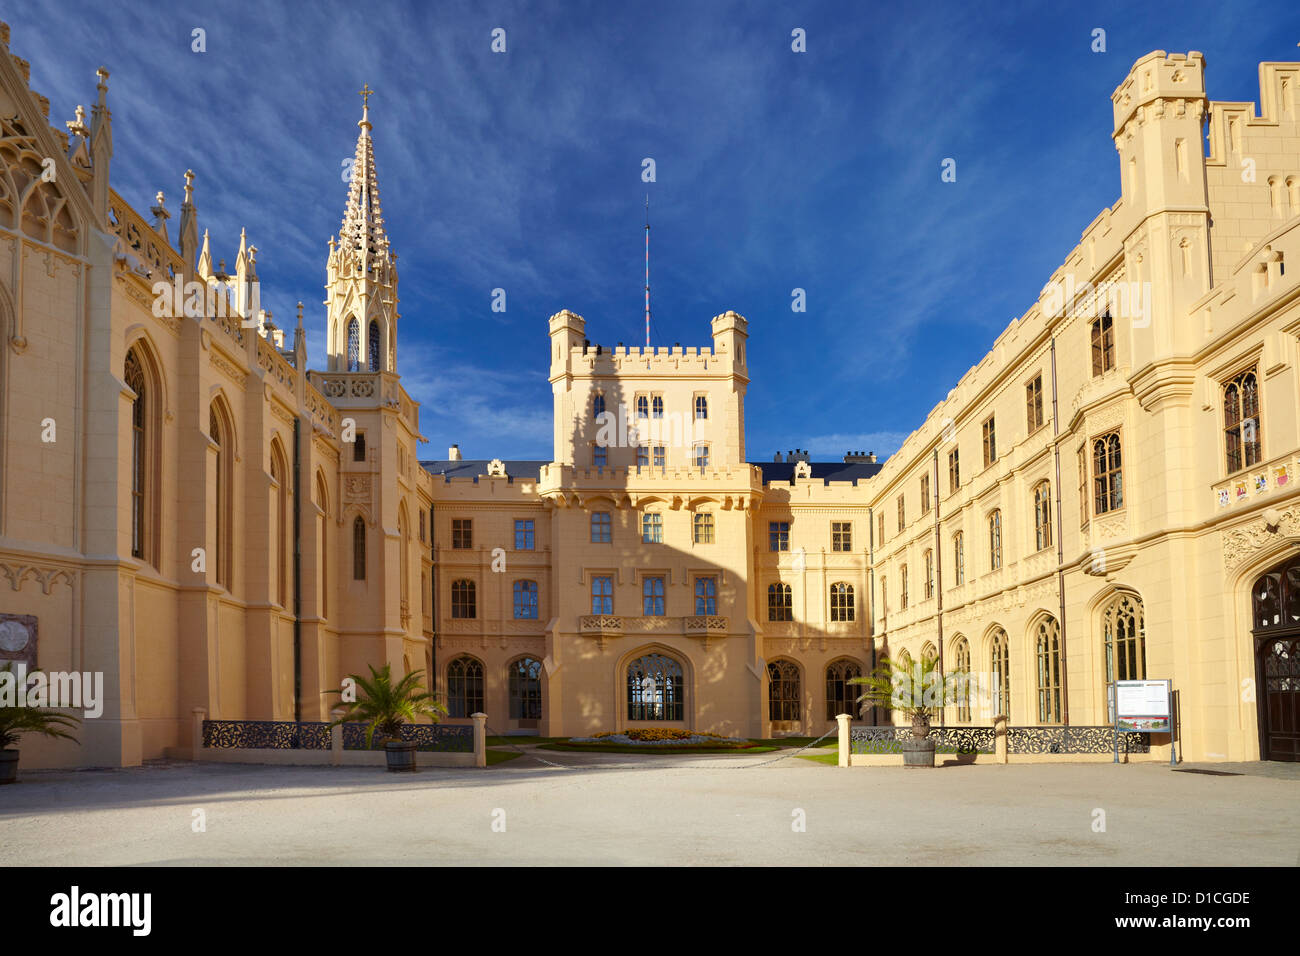 Lednice Castle, Czech Republic, Europe - Stock Image